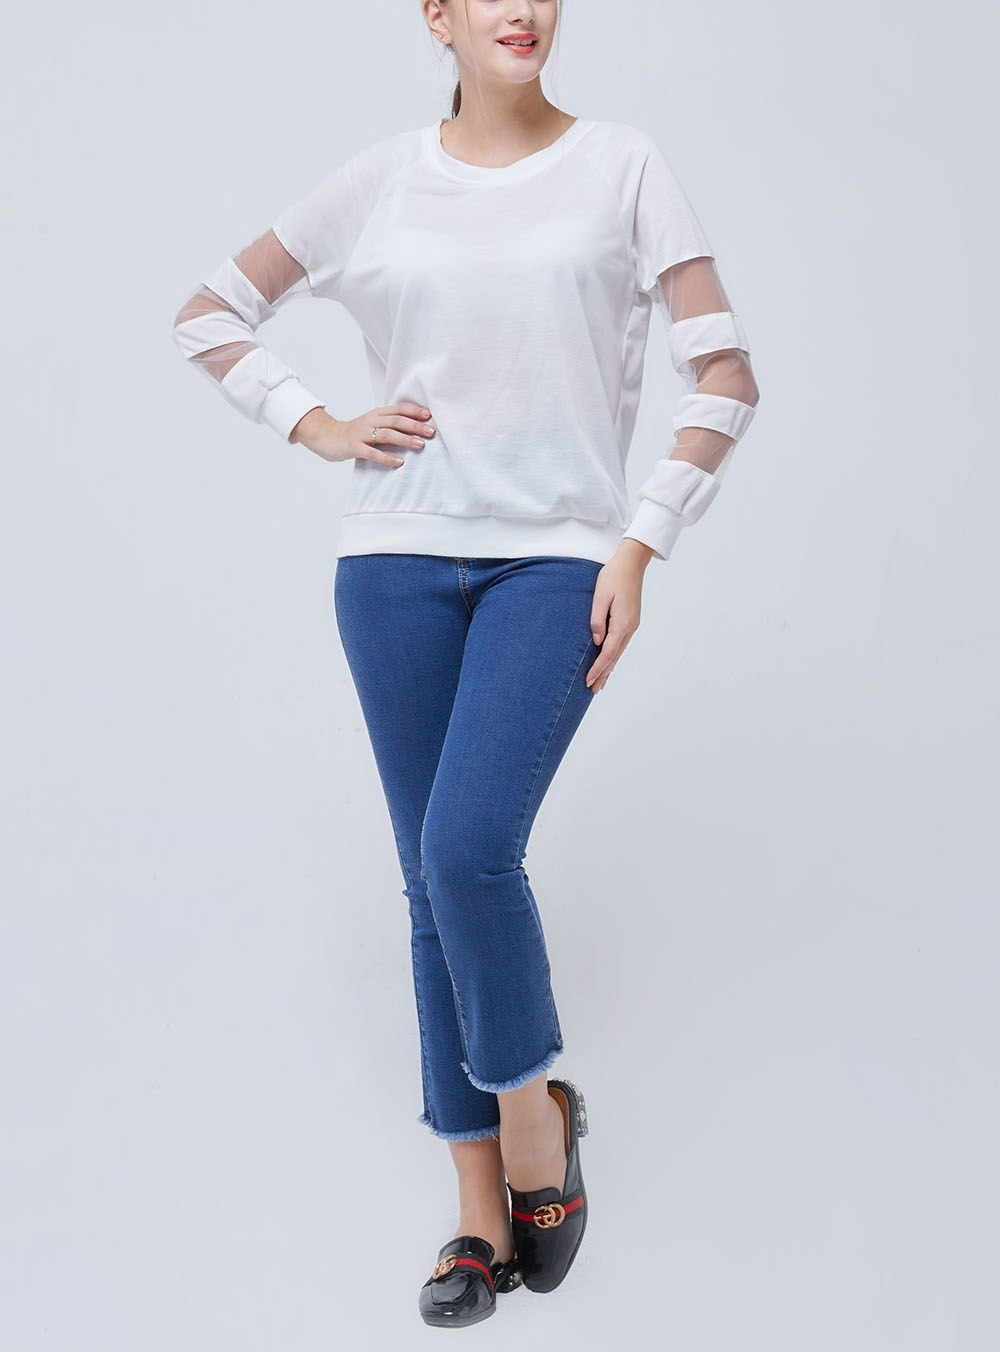 Long-Sleeved Tee with Sheer Inserts